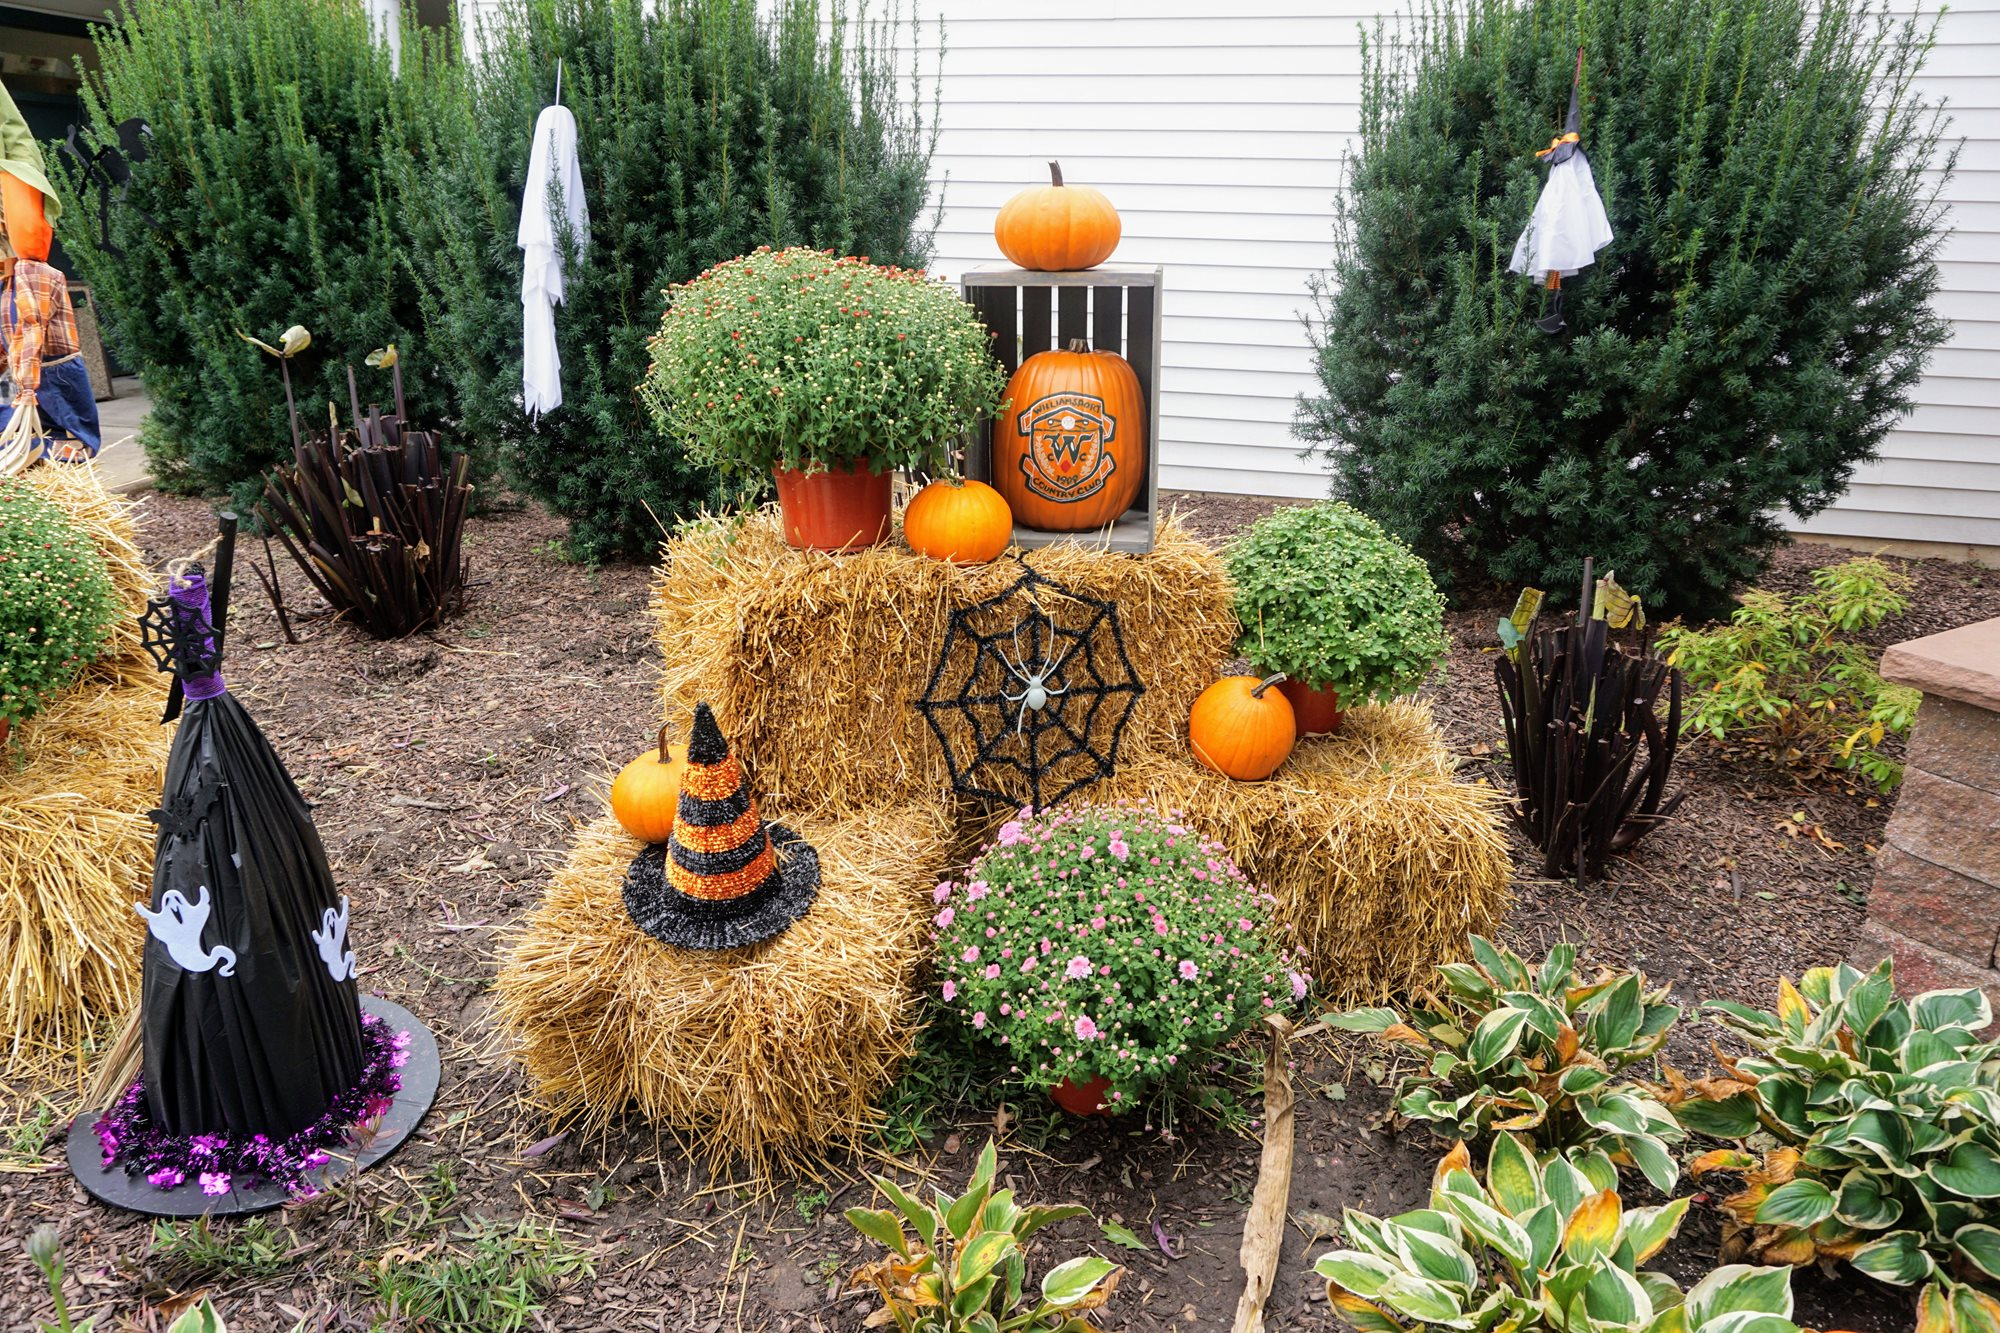 3_Pumpkins_and_Pony_Rides_10_14_18_022